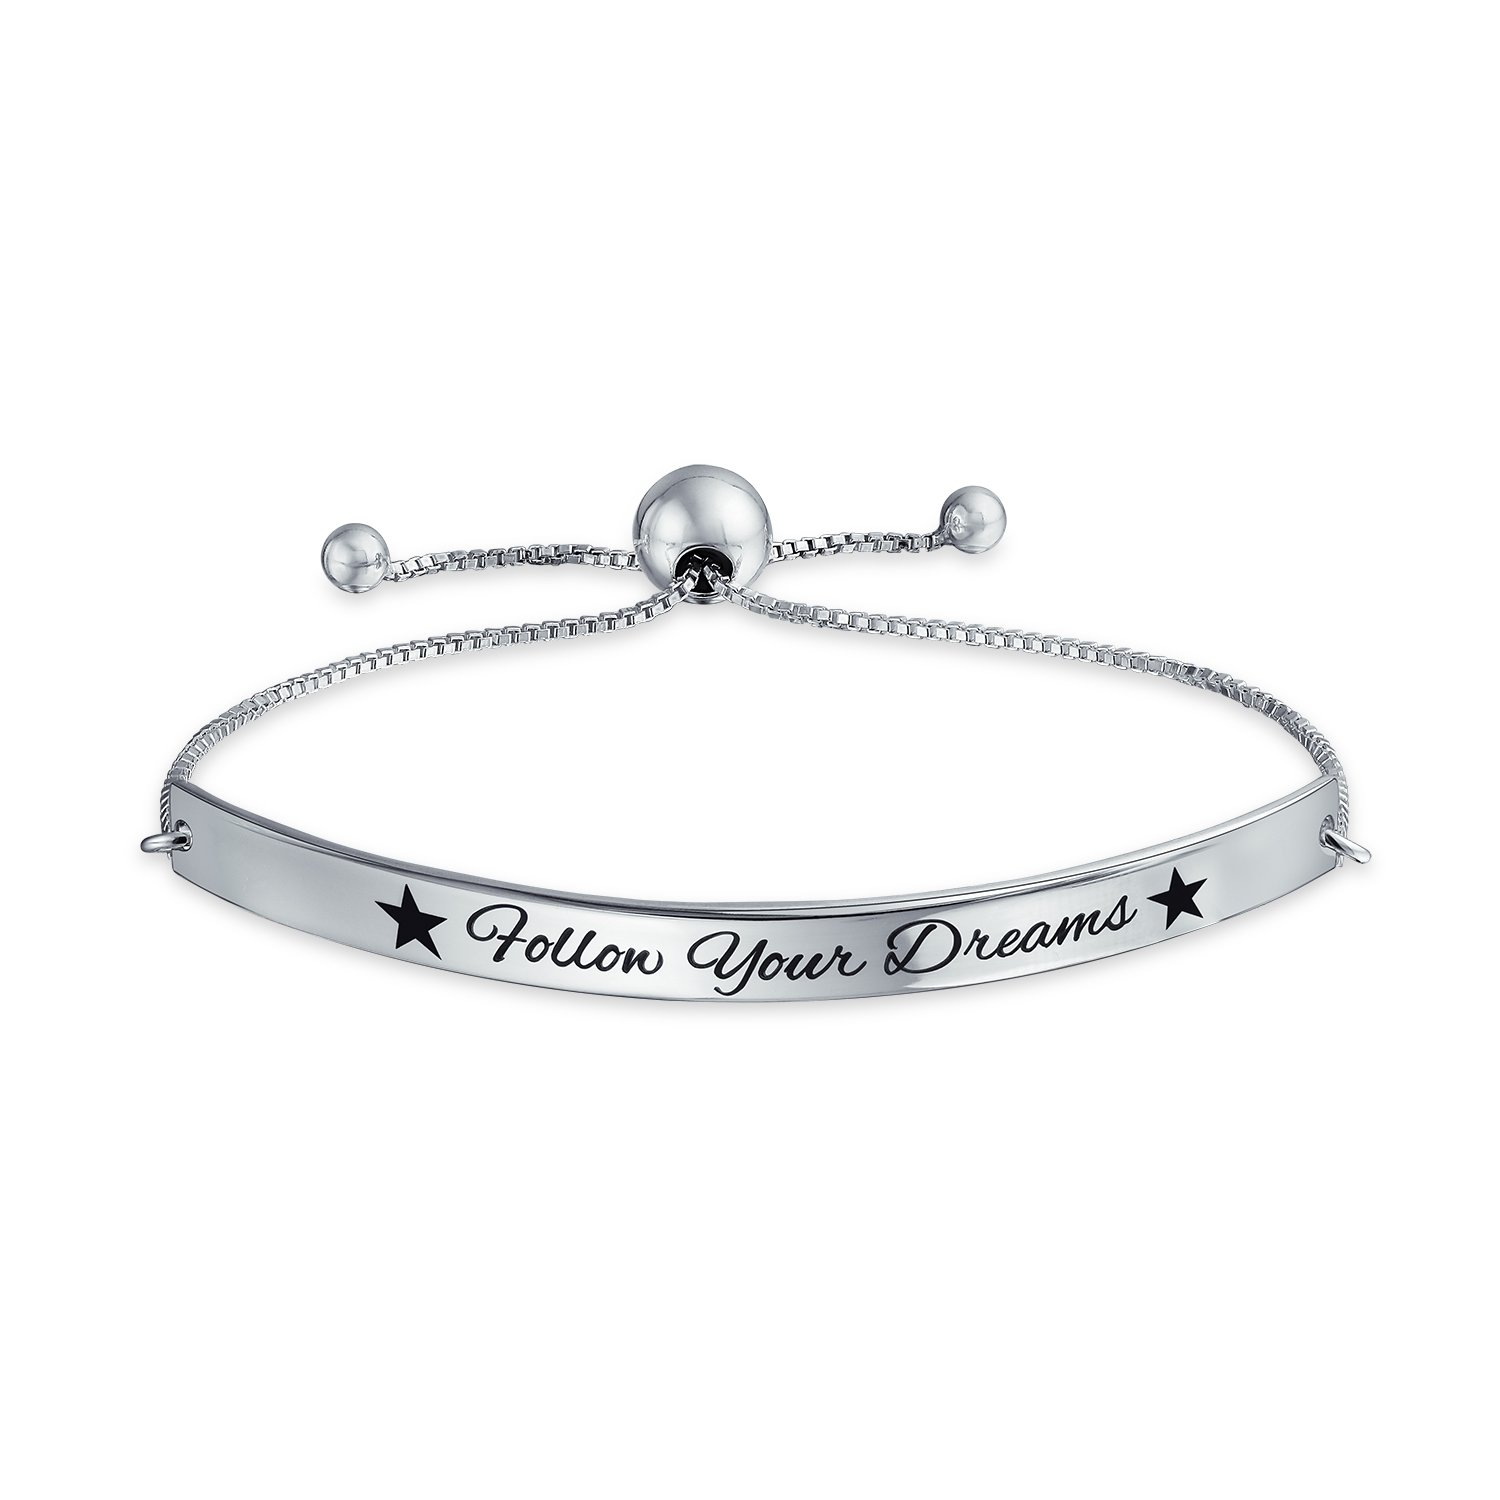 Follow Your Dreams Inspirational Message Bolo Bar Bracelet Adjustable 925 Silver 11 Inch by Bling Jewelry (Image #1)